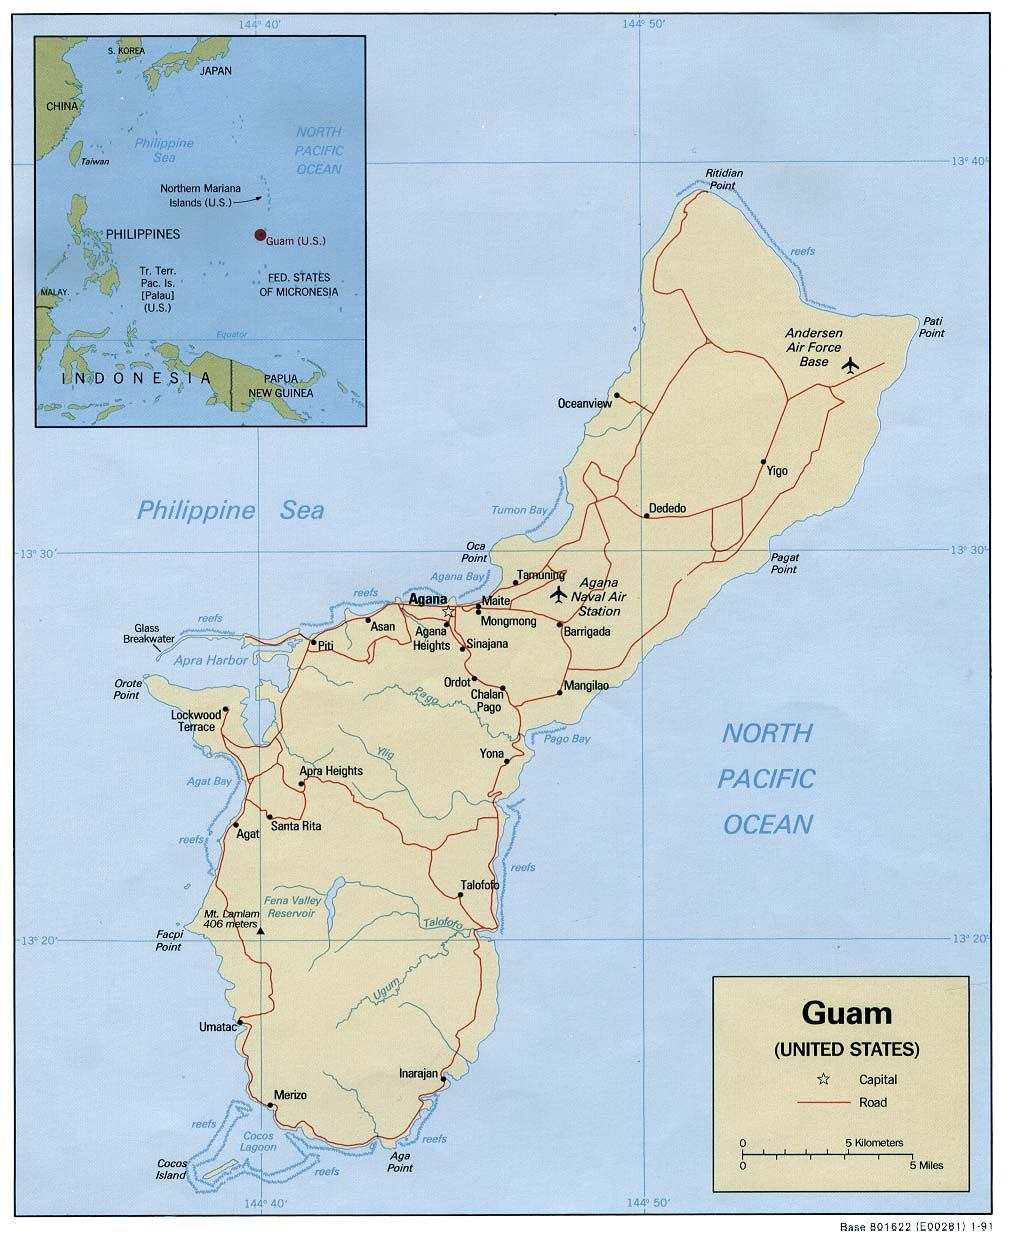 Map of Guåhan - Guam (Political), 1991. Courtesy of, The World Factbook (http://cia.gov/cia/publications/factbook) or CIA Maps and Publications Released to the Public (http://www.cia.gov/cia/publications/mapspub), Central Intelligence Agency (CIA), Government of the United States of America (USA); and the Perry-Casta�eda Map Collection (http://www.lib.utexas.edu/maps), Perry-Casta�eda Library, The General Libraries, University of Texas at Austin, Austin, Texas, USA.